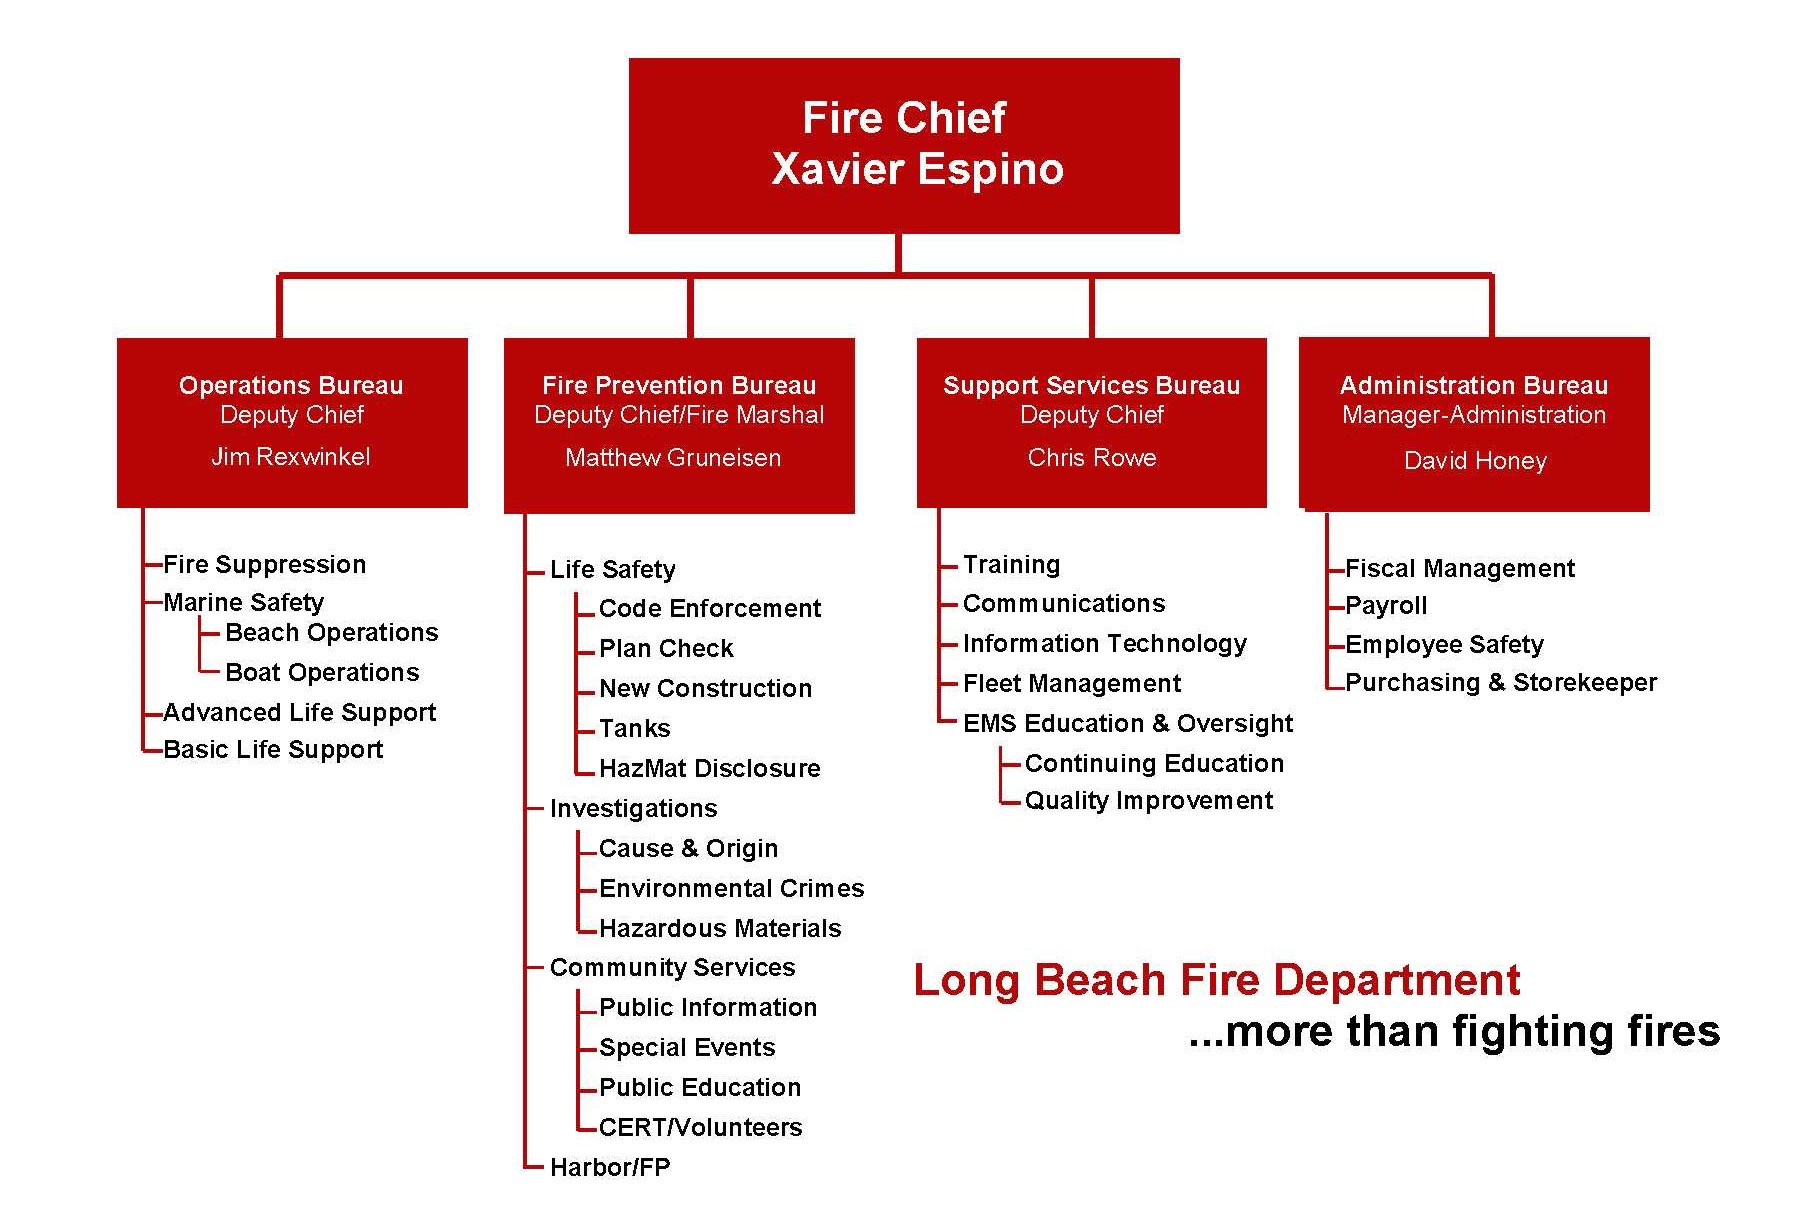 Organization Chart The Long Beach Fire Department Is Divided Into Five Bureaus Which Report To Chief Each Bureau Further Broken Down